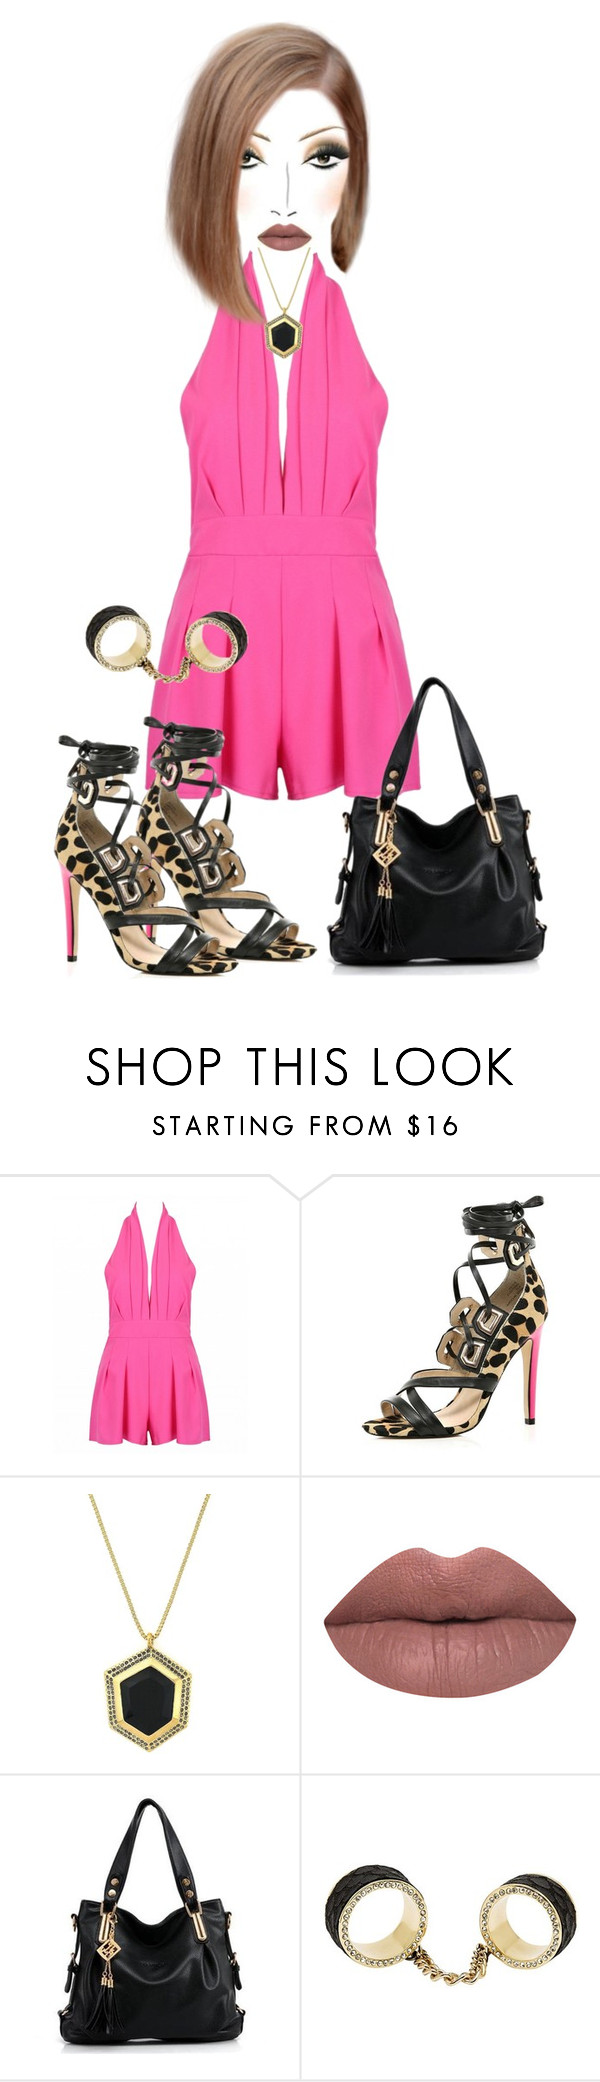 """""""Untitled #4628"""" by cristalabron ❤ liked on Polyvore featuring River Island, Vince Camuto, LASplash and CC SKYE"""